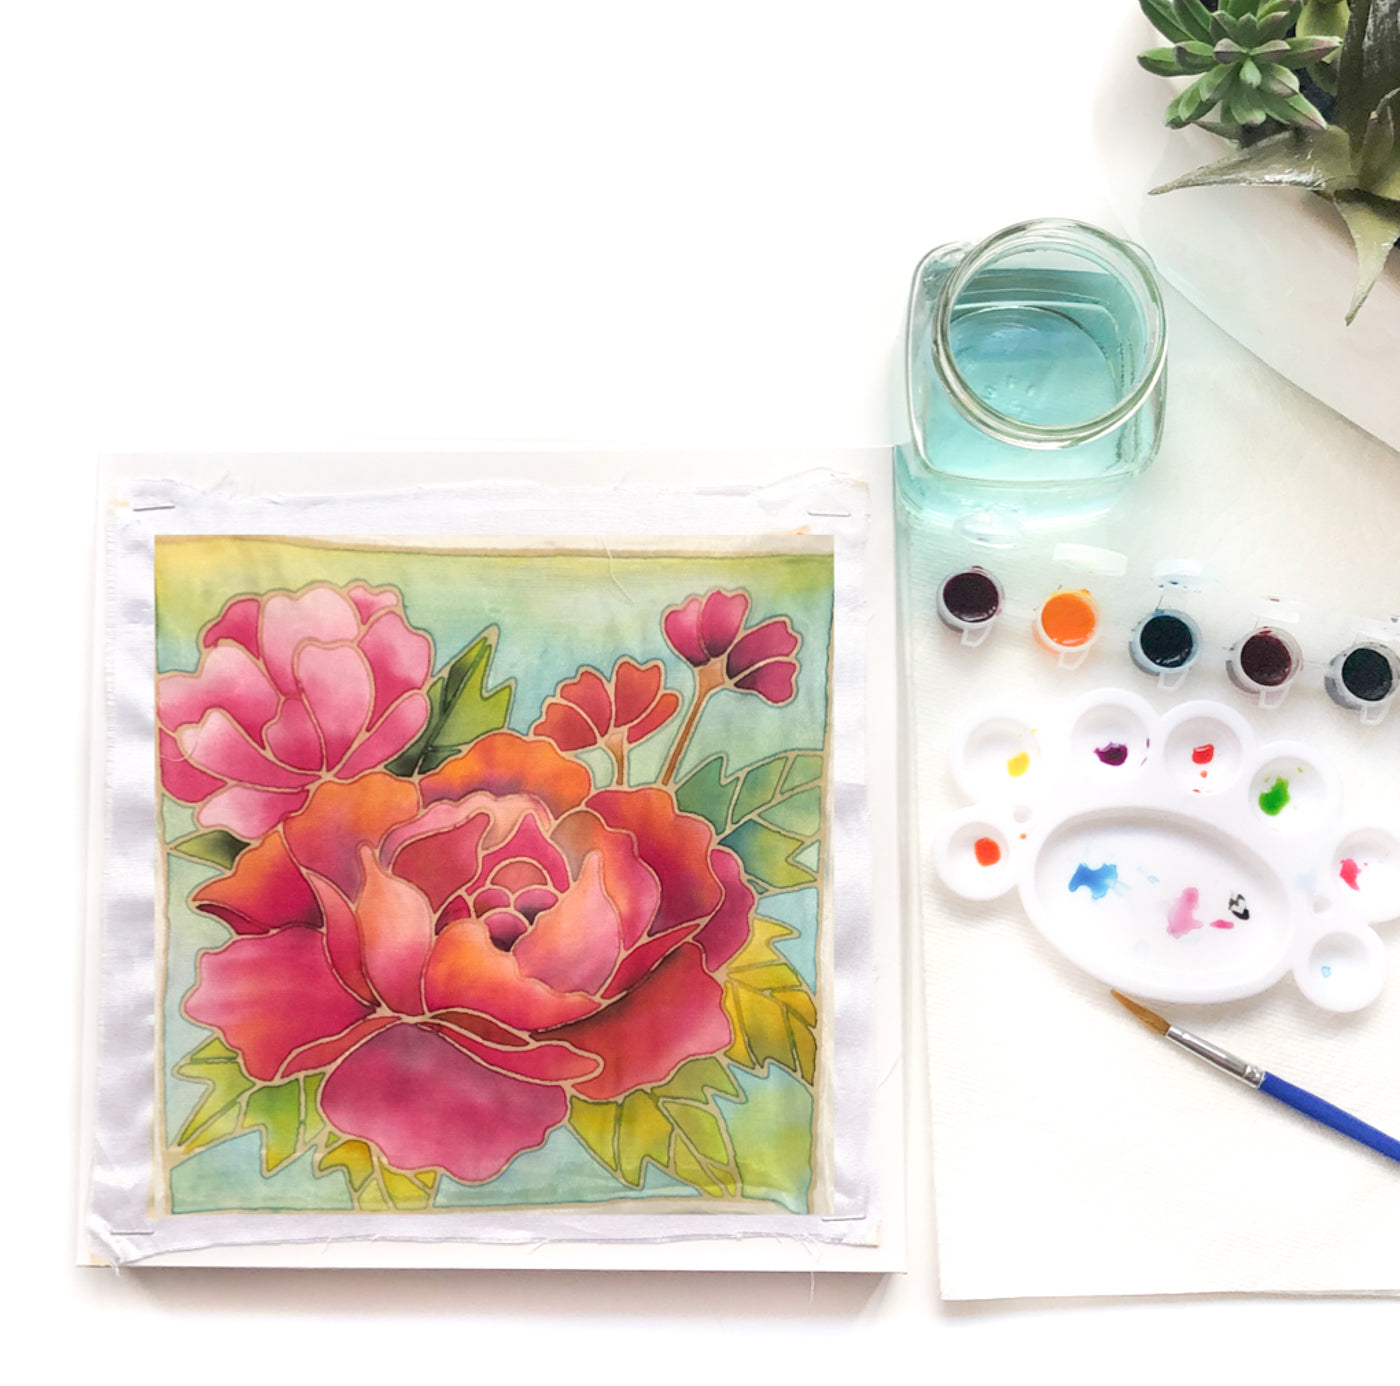 DIY Batik Flower Fabric Painting Kit - 8x8 Inch Pre Drawn Wax Design, Paint, Brush and Palette